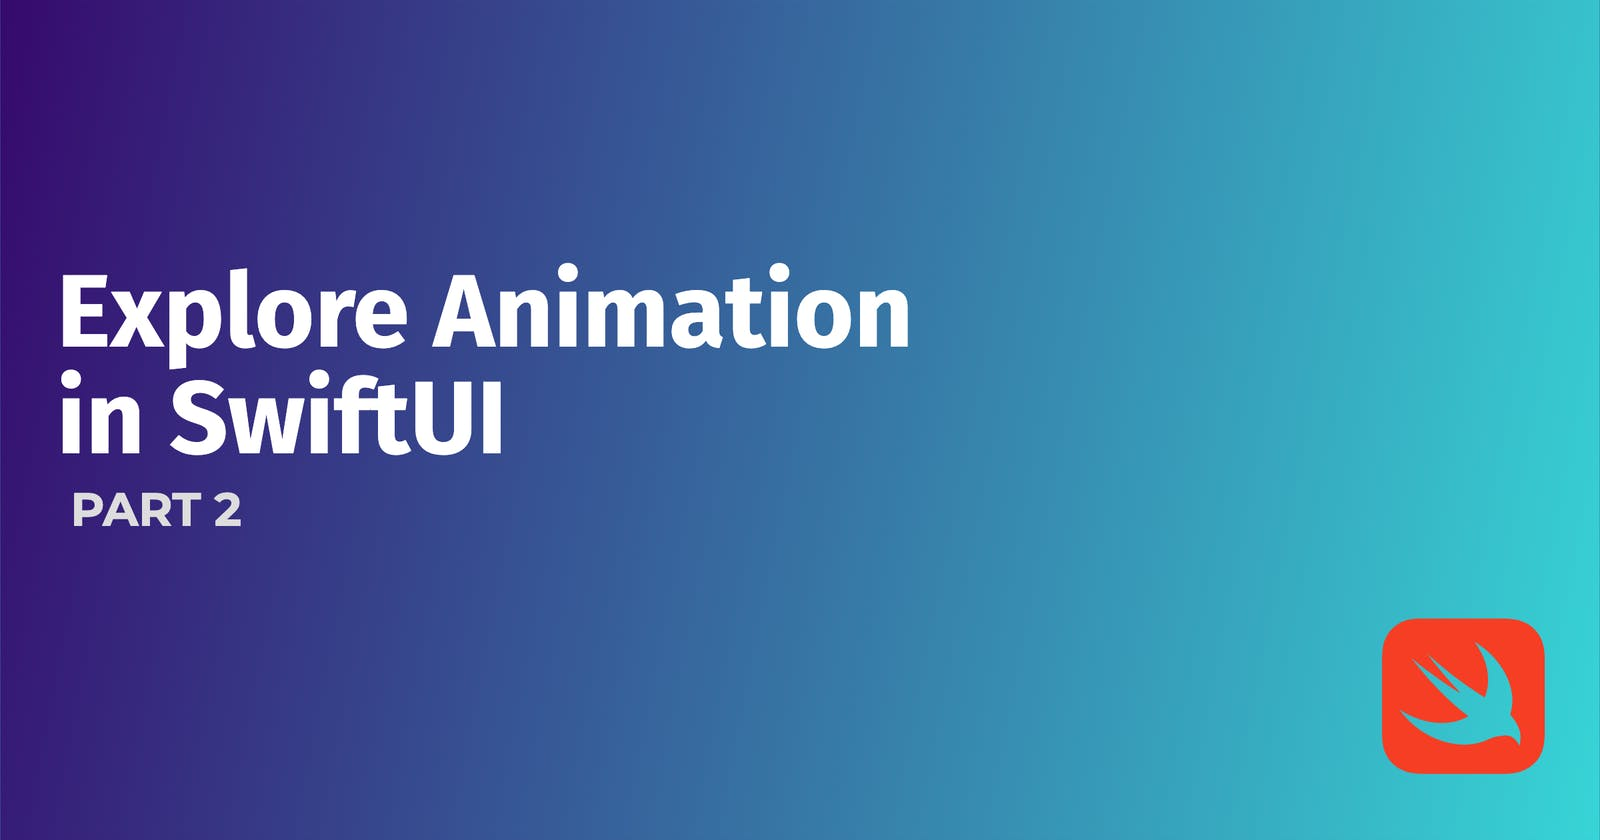 Explore Animation in SwiftUI - PART 2